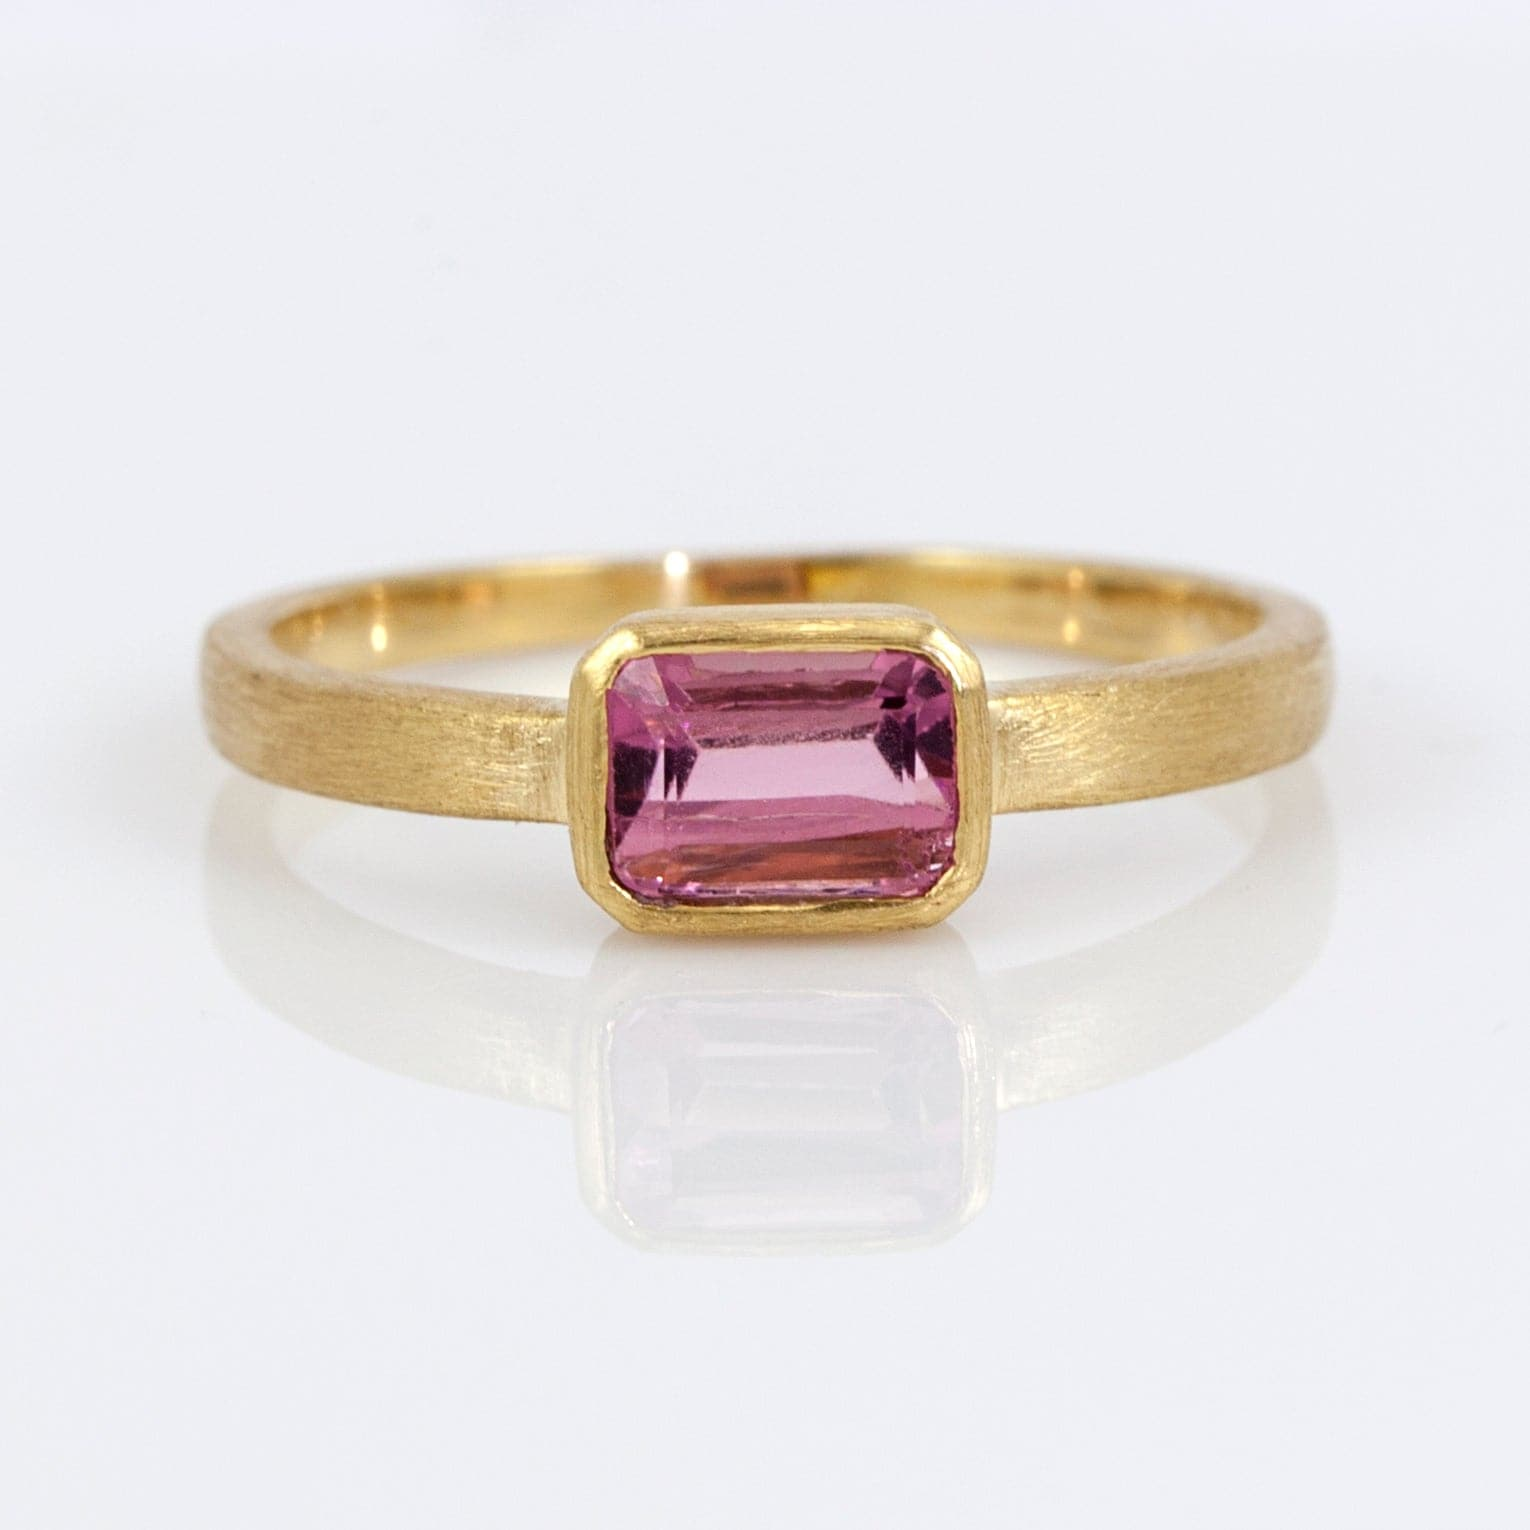 Nina 18KYG Emerald-Cut Pink Tourmaline Ring